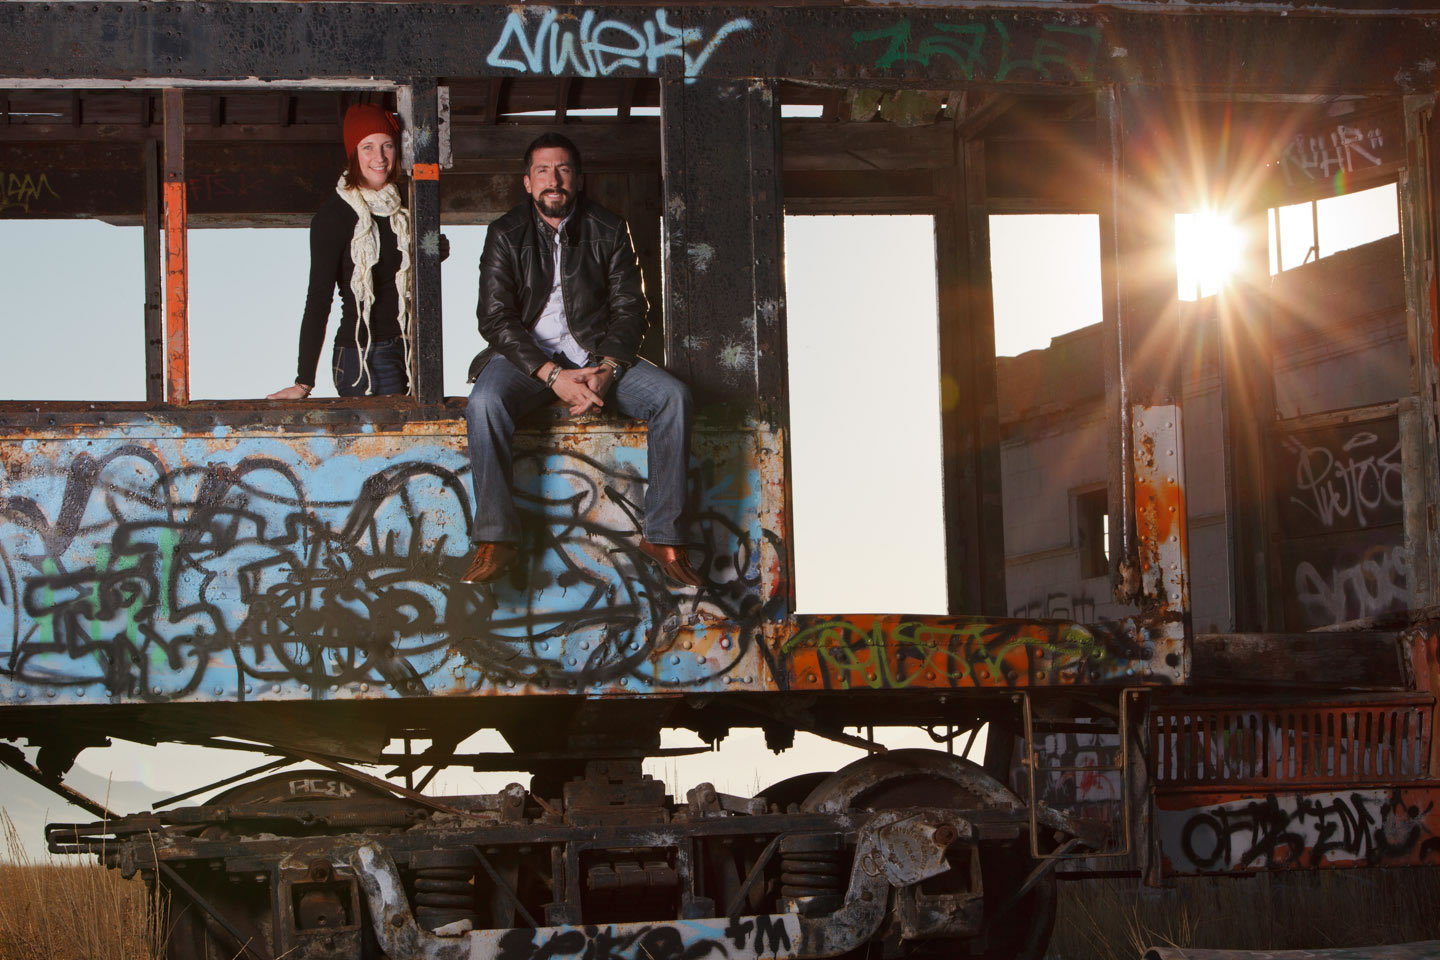 Anne and Aaron on the abandoned trolley, the trolley has since been removed